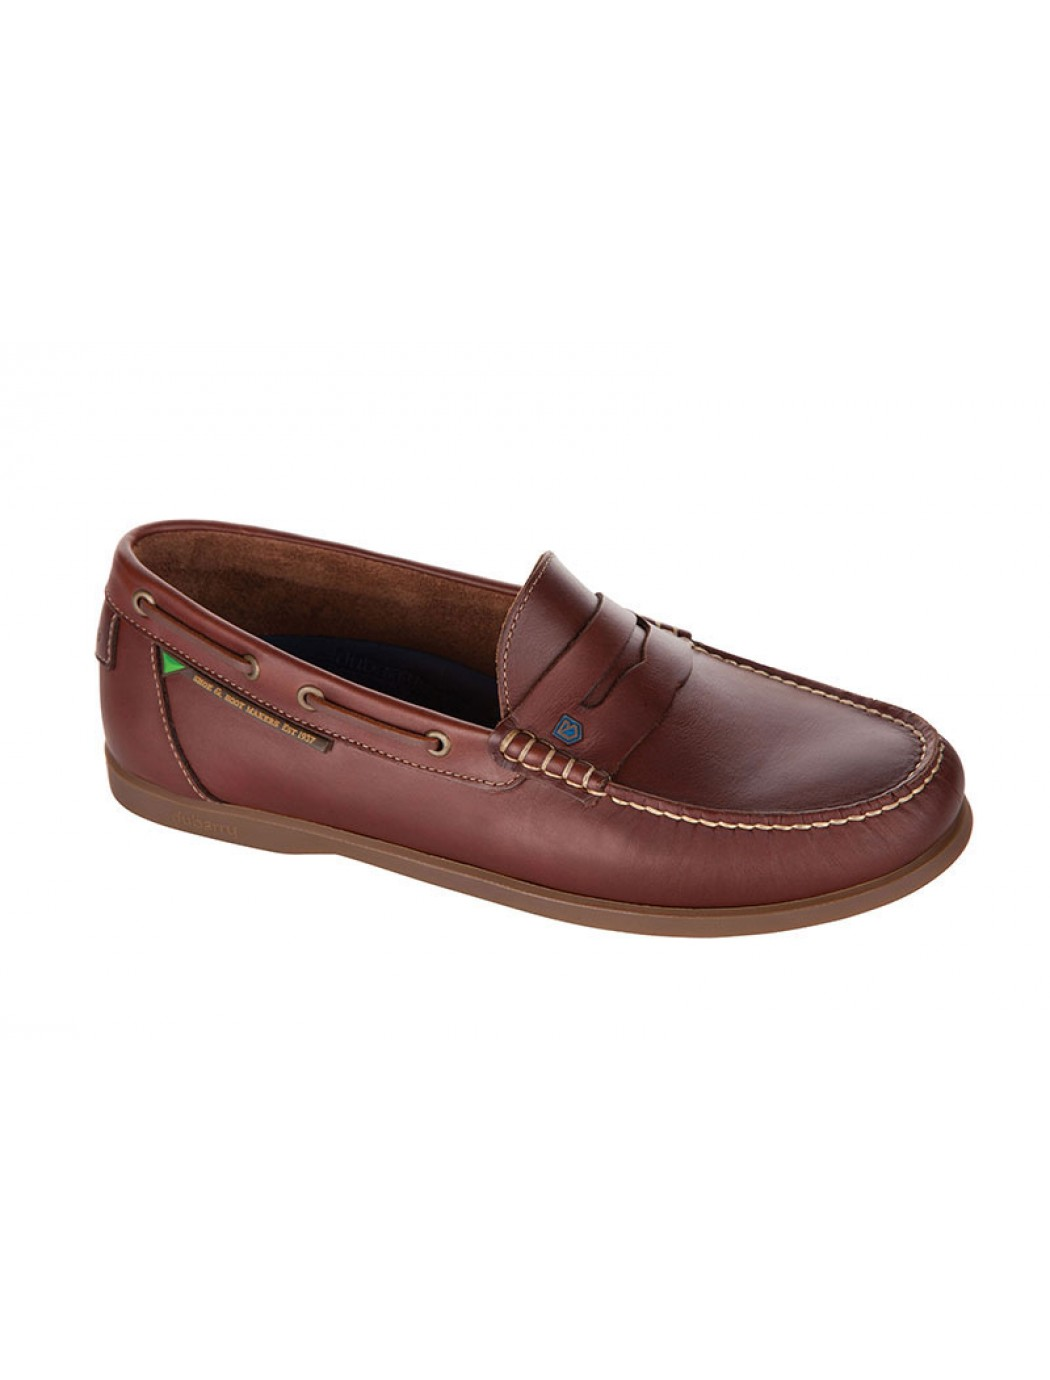 leeward-mens-decks-chestnut